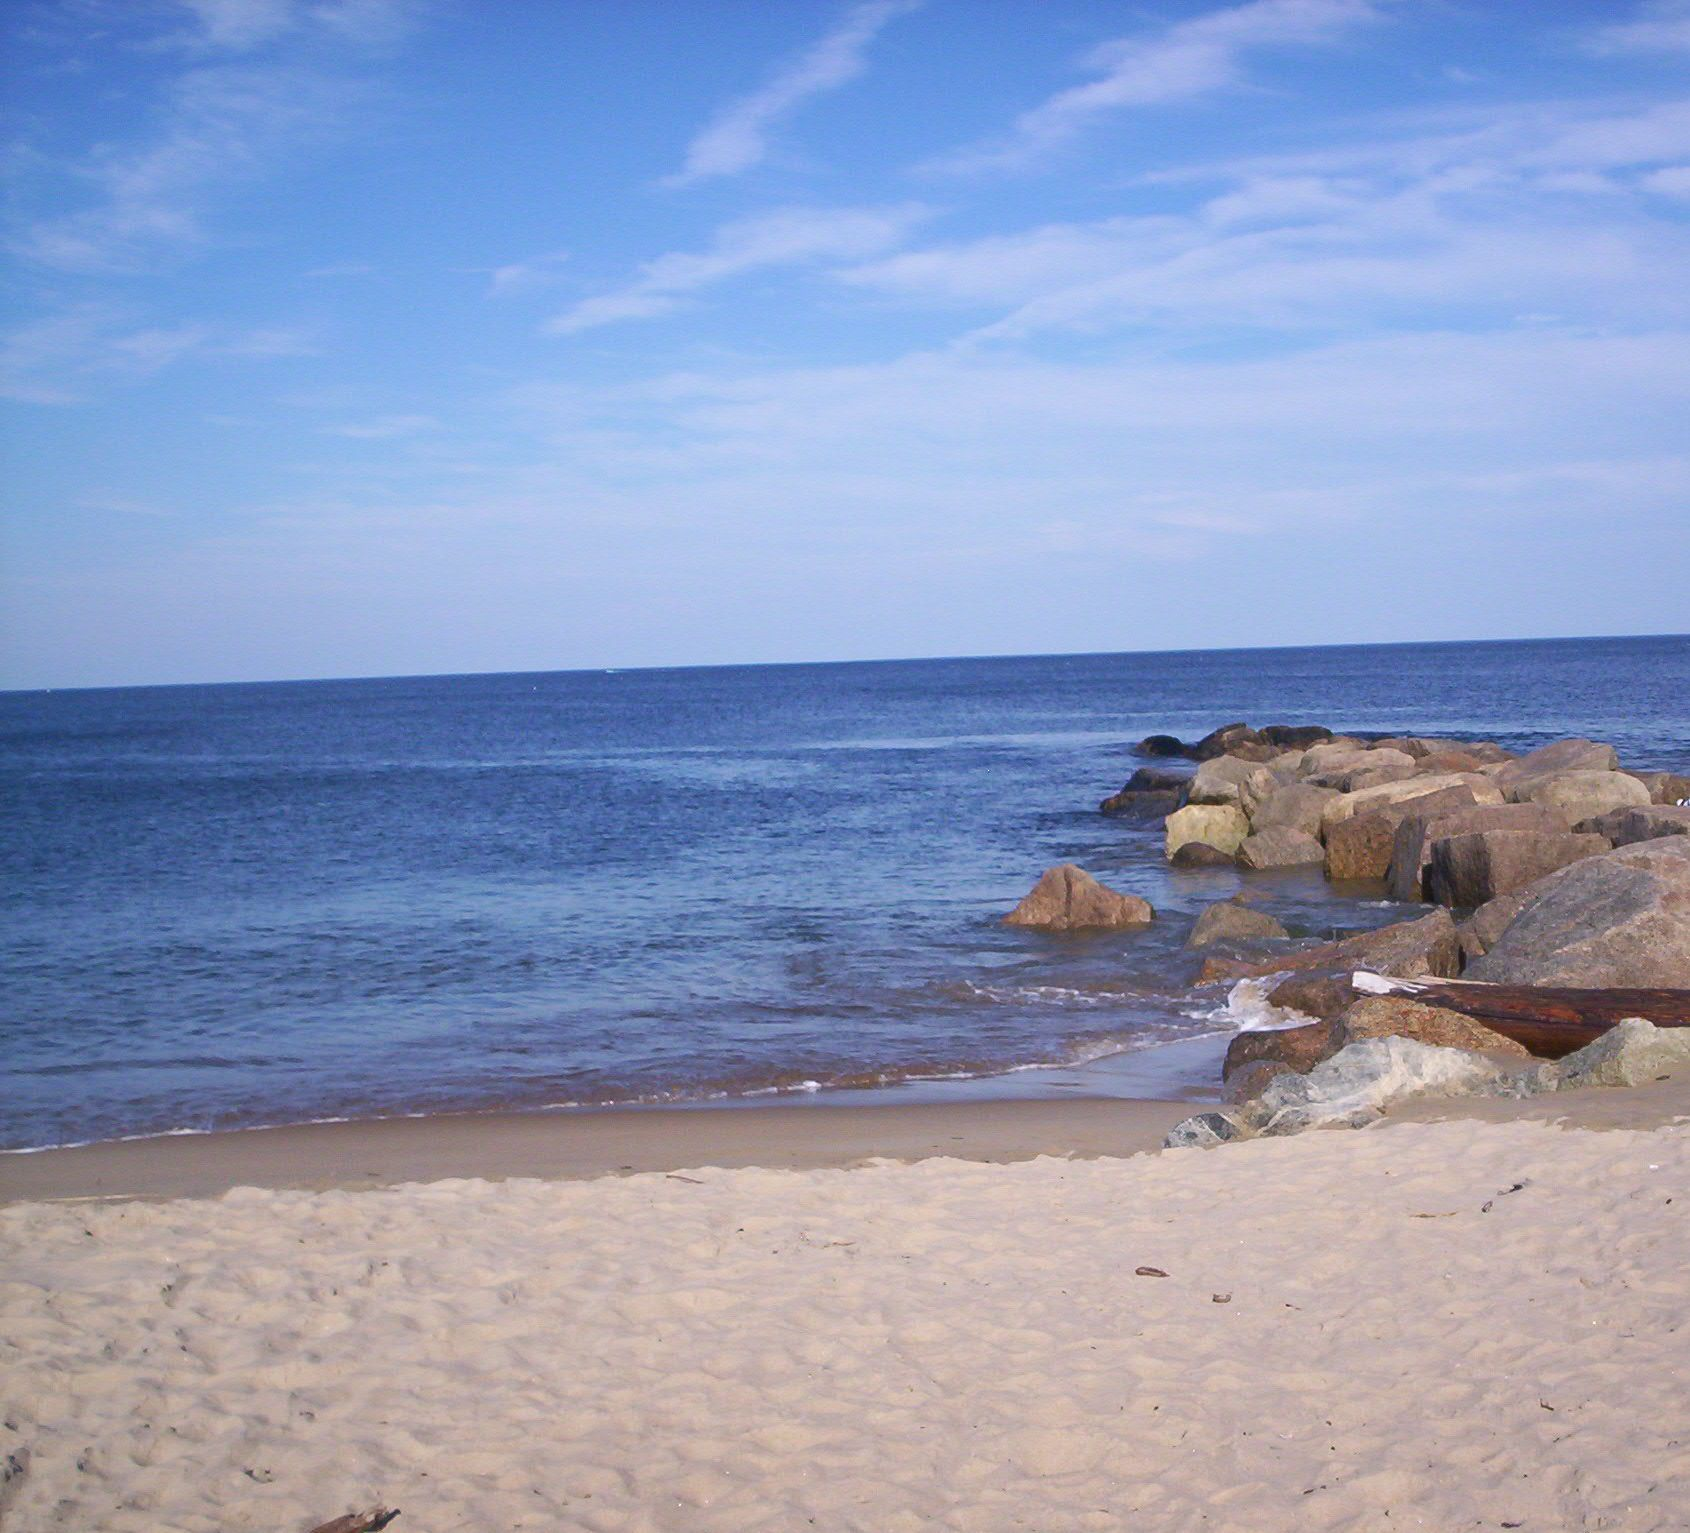 Plum Island Beach: Plum Island, Newburyport, Massachusetts